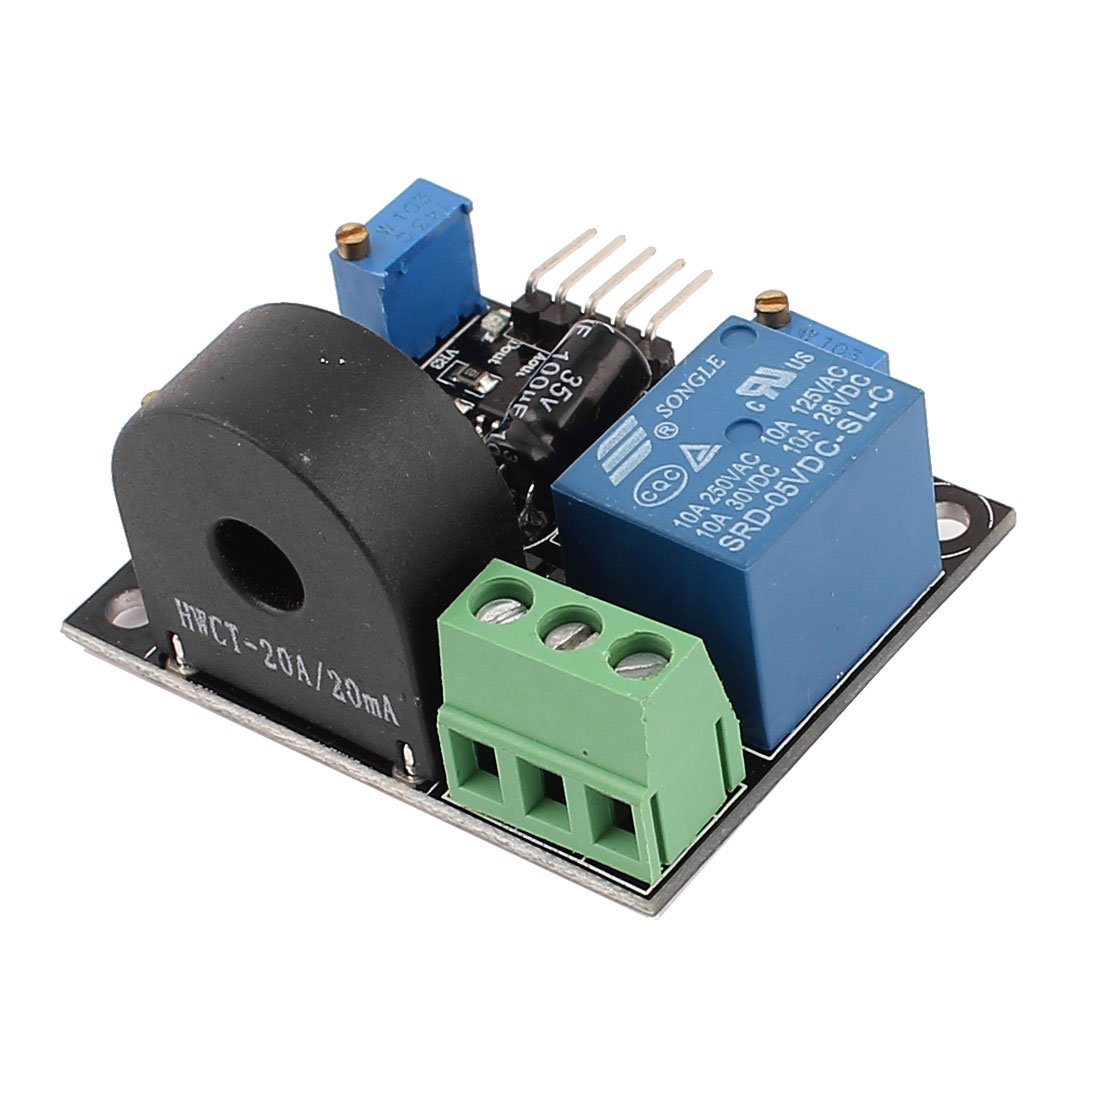 Ac Current Detection Sensor Module 0 20a Over Protection Circuit Dc5v Industrial Scientific